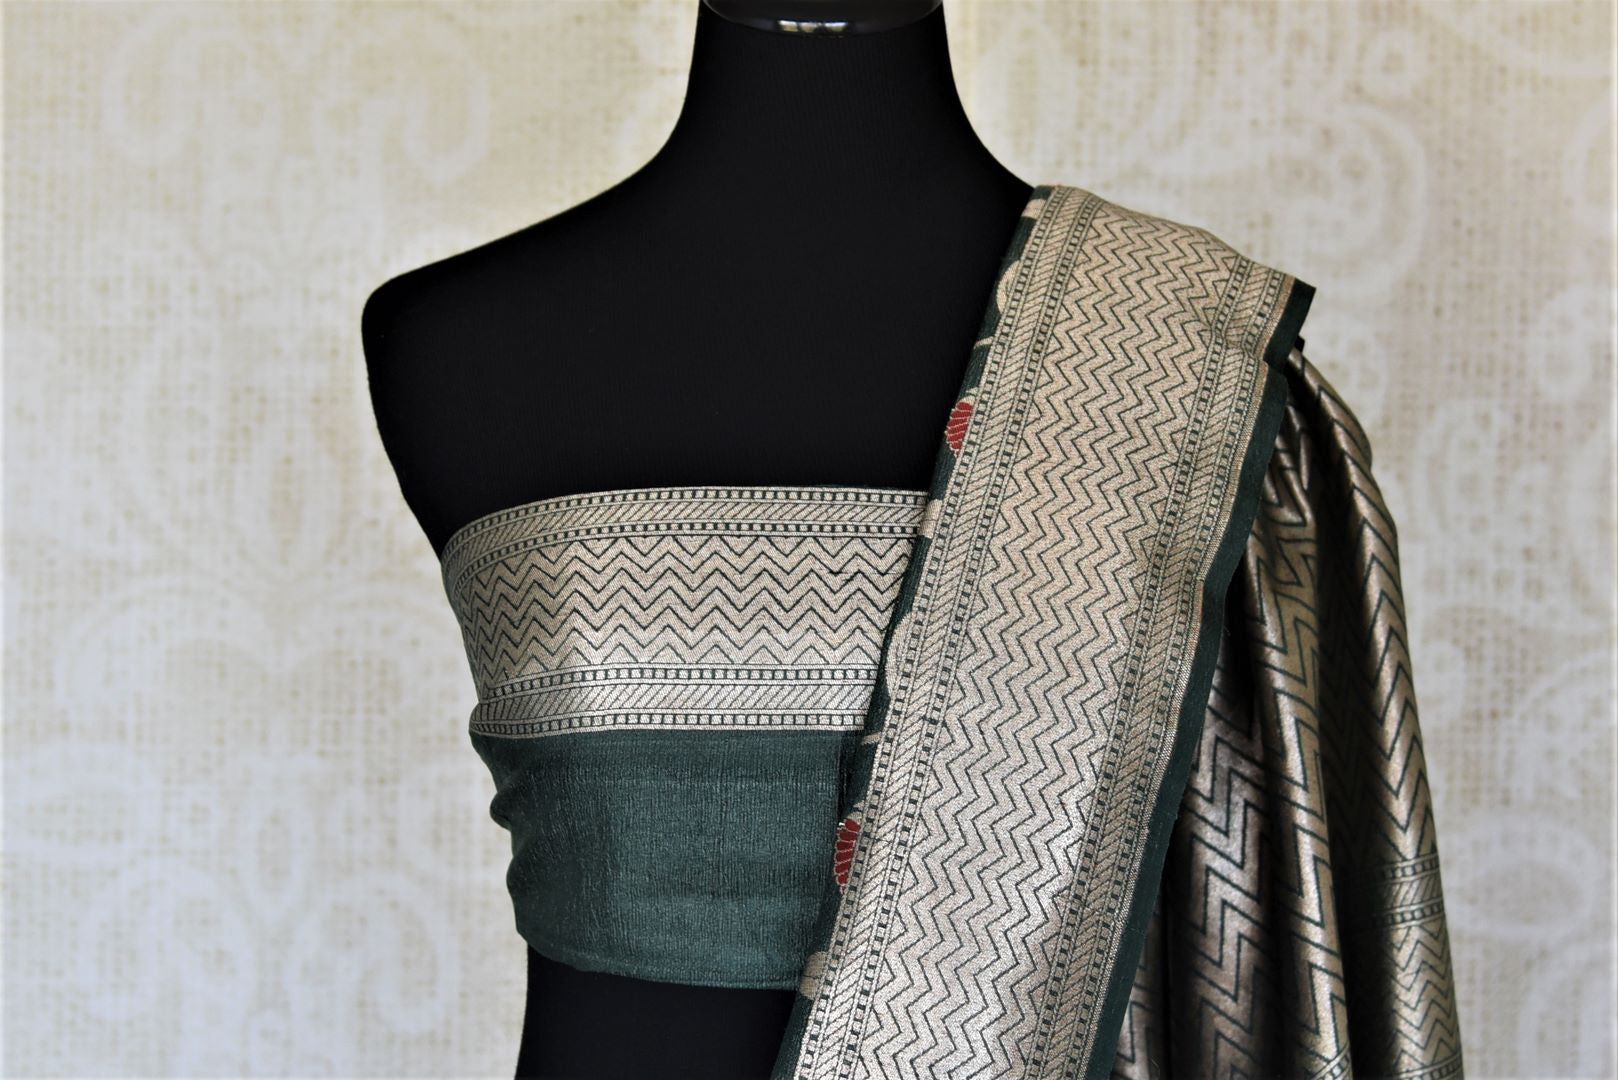 Buy beautiful grey khaddi Banarasi saree online in USA with silver zari and minakari work. For Indian women in USA, Pure Elegance Indian fashion store brings an exquisite collection Banarasi sarees, Banarasi silk saris, tussar sarees,  work sarees, pure silk sarees all under one roof. Shop online now.-blouse pallu